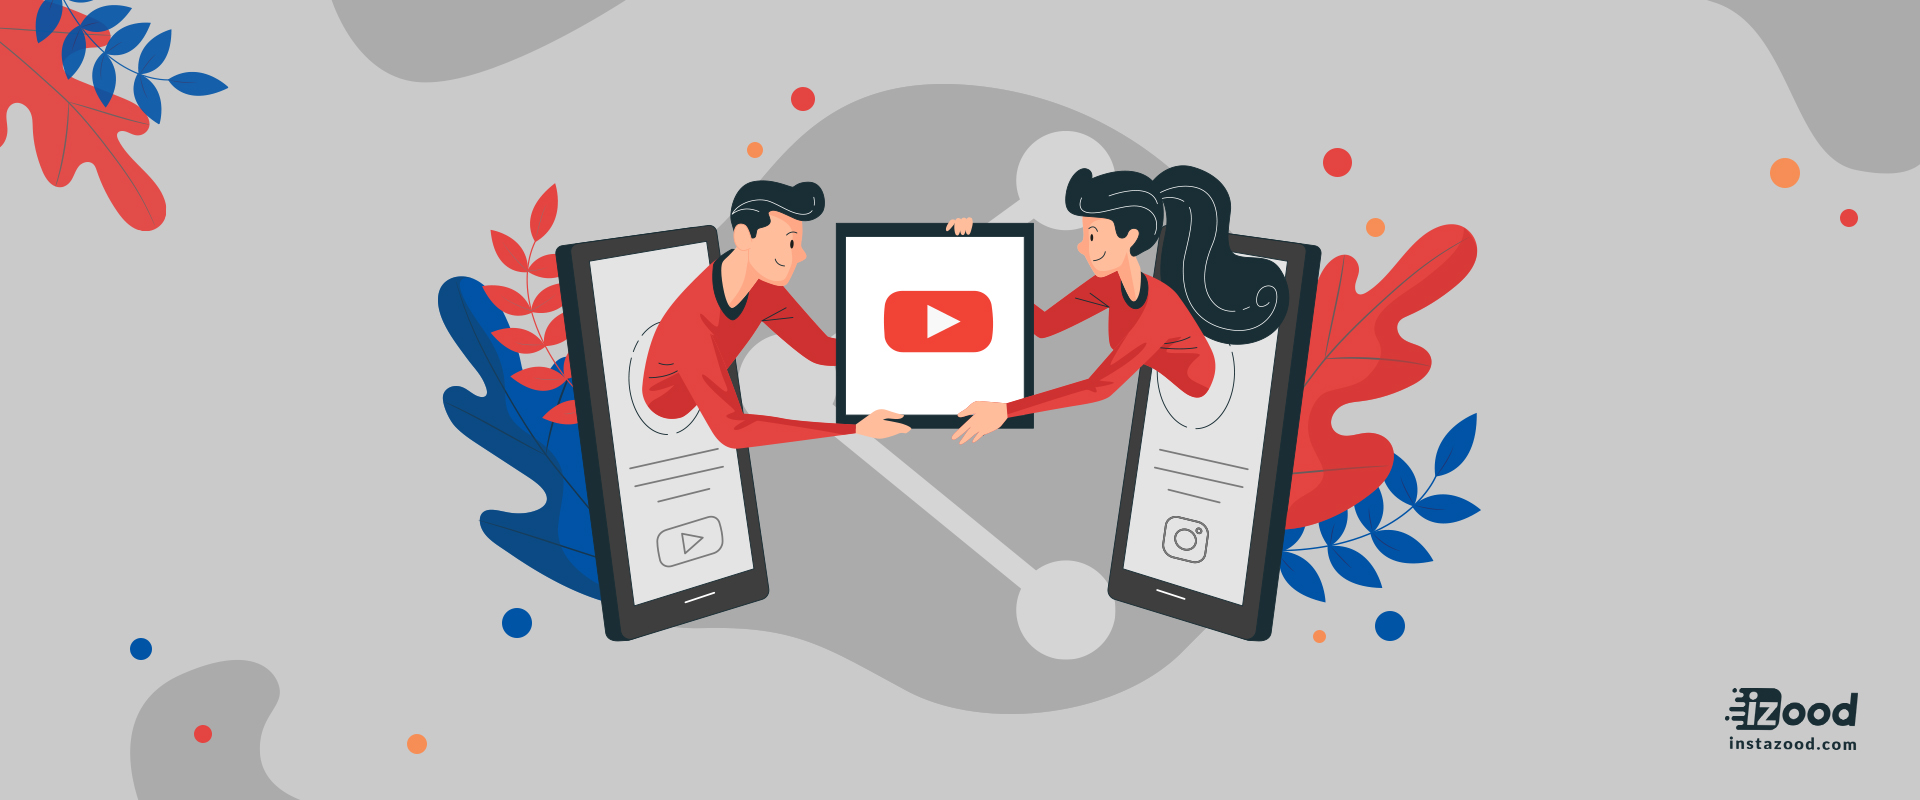 How to share a YouTube video on Instagram?